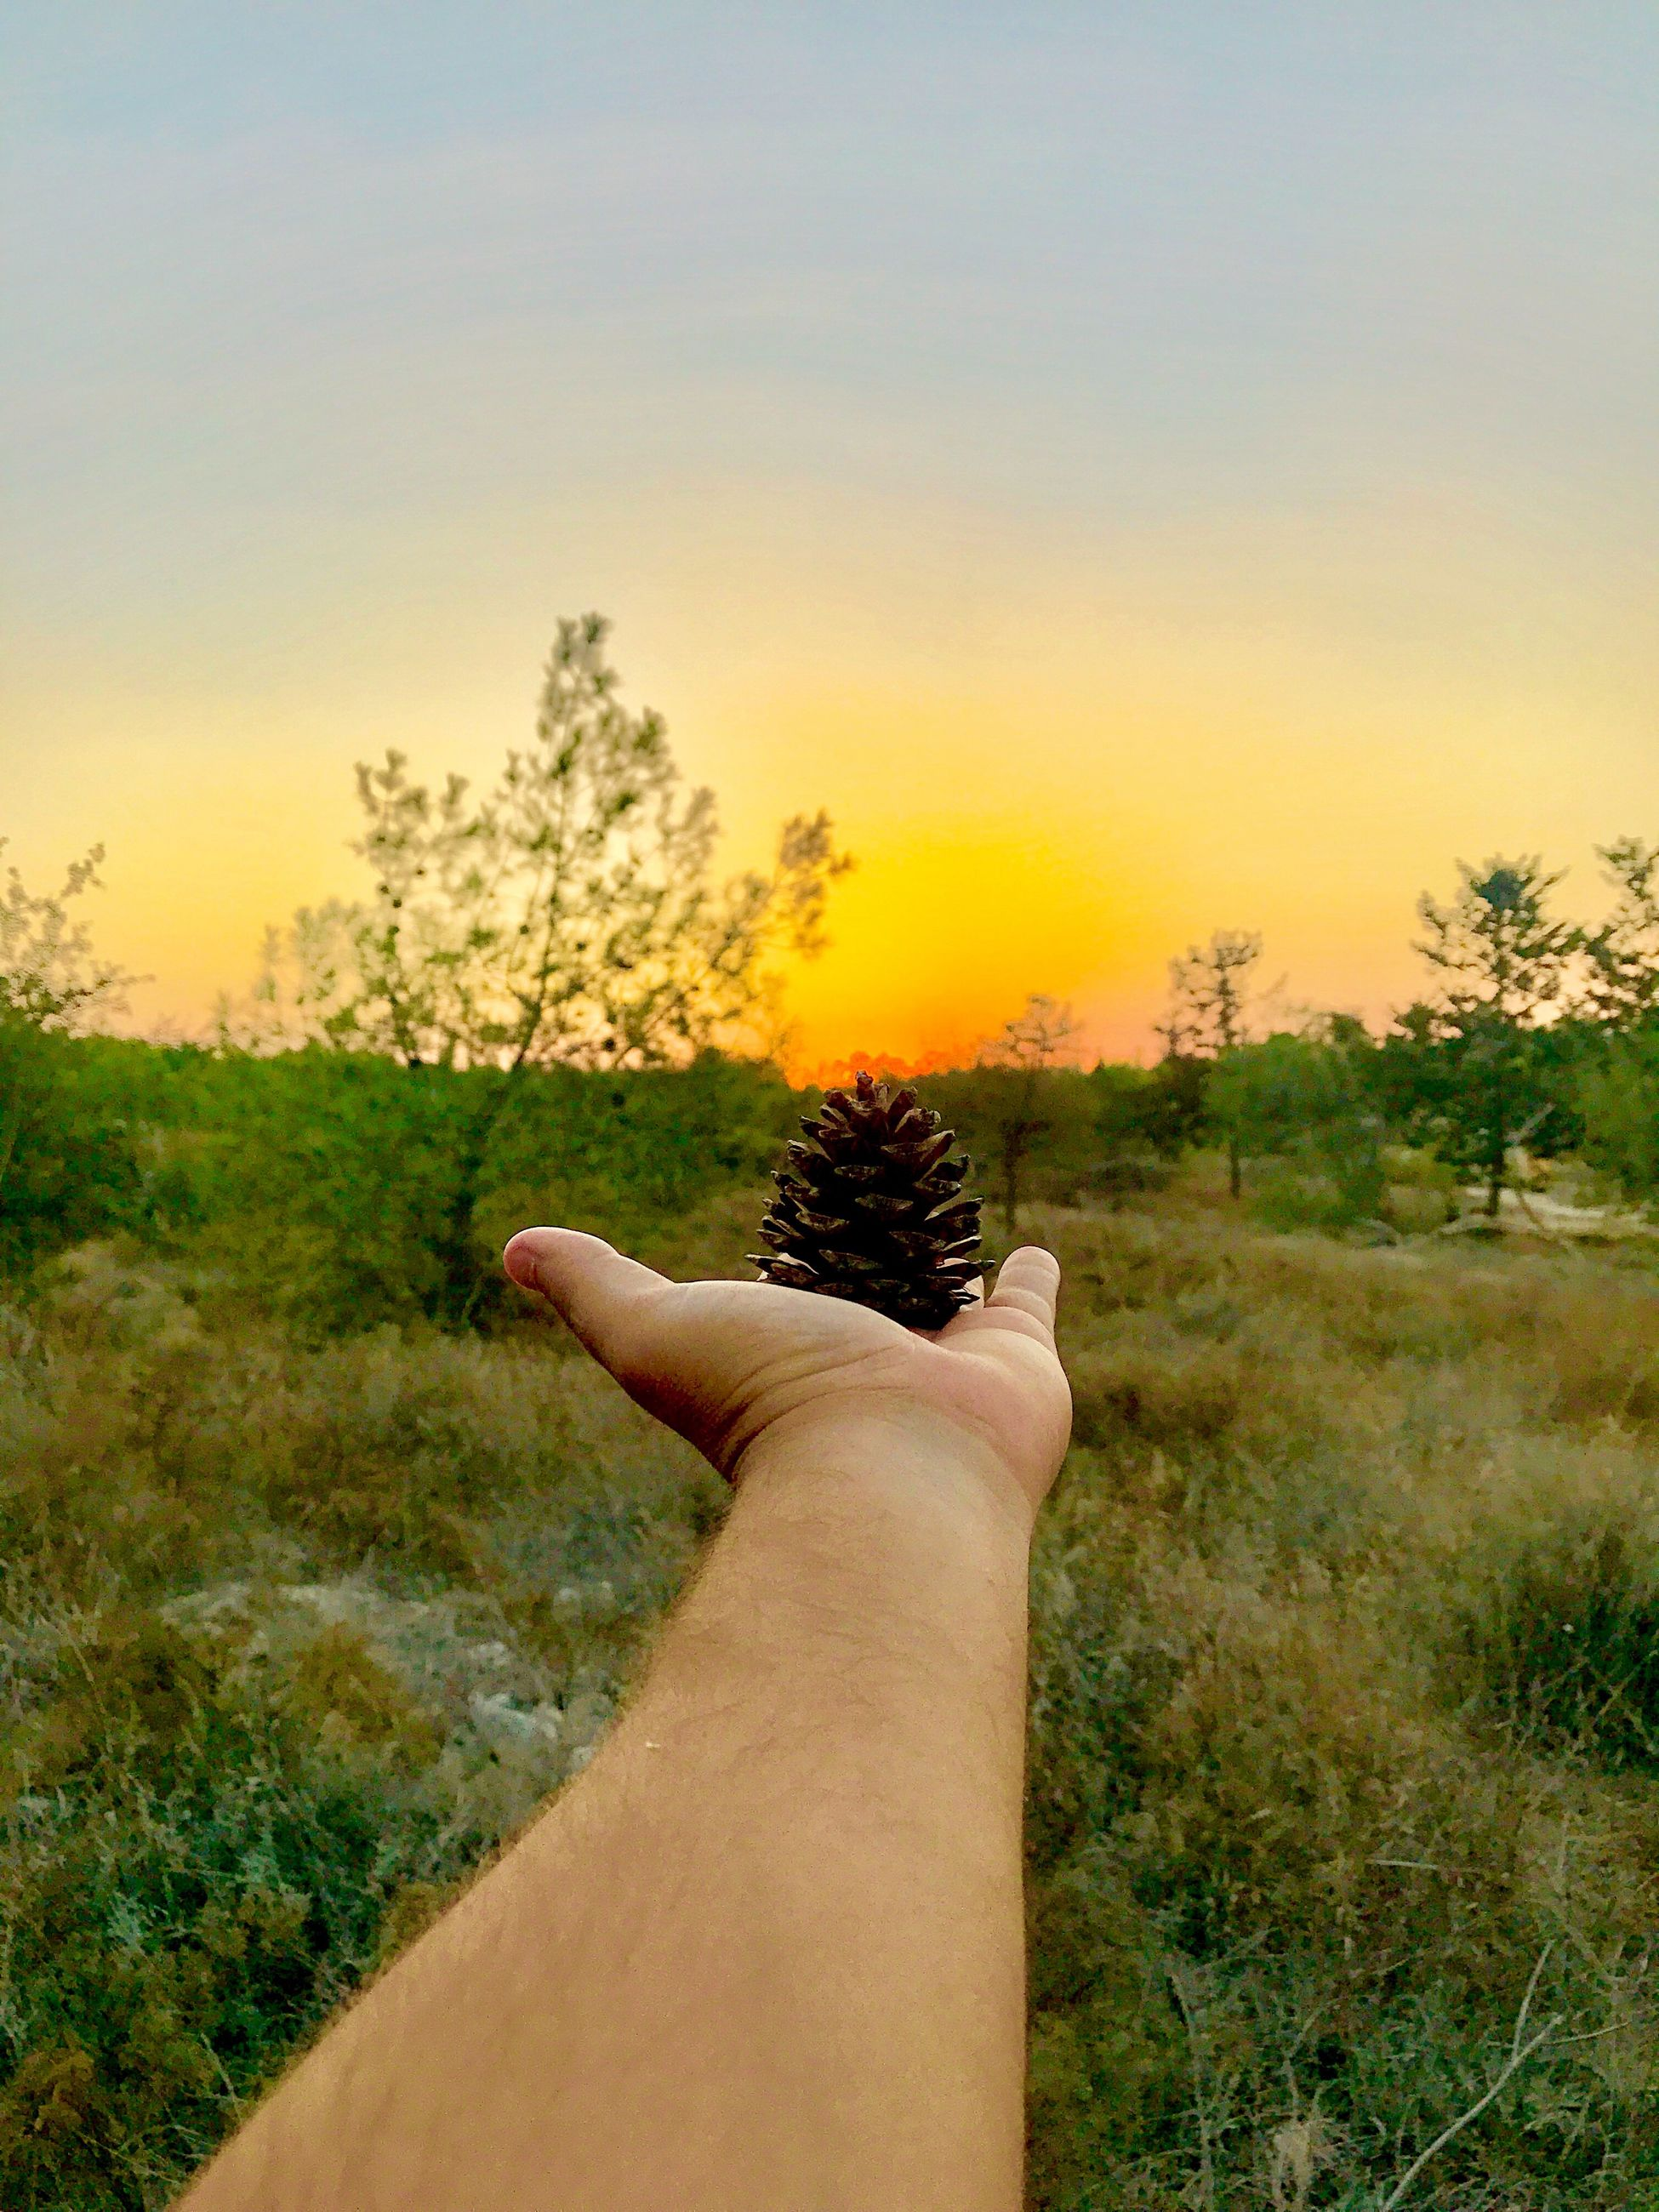 human hand, human body part, personal perspective, tree, one person, nature, sunset, real people, human finger, sky, plant, landscape, outdoors, grass, field, beauty in nature, scenics, men, clear sky, close-up, day, people